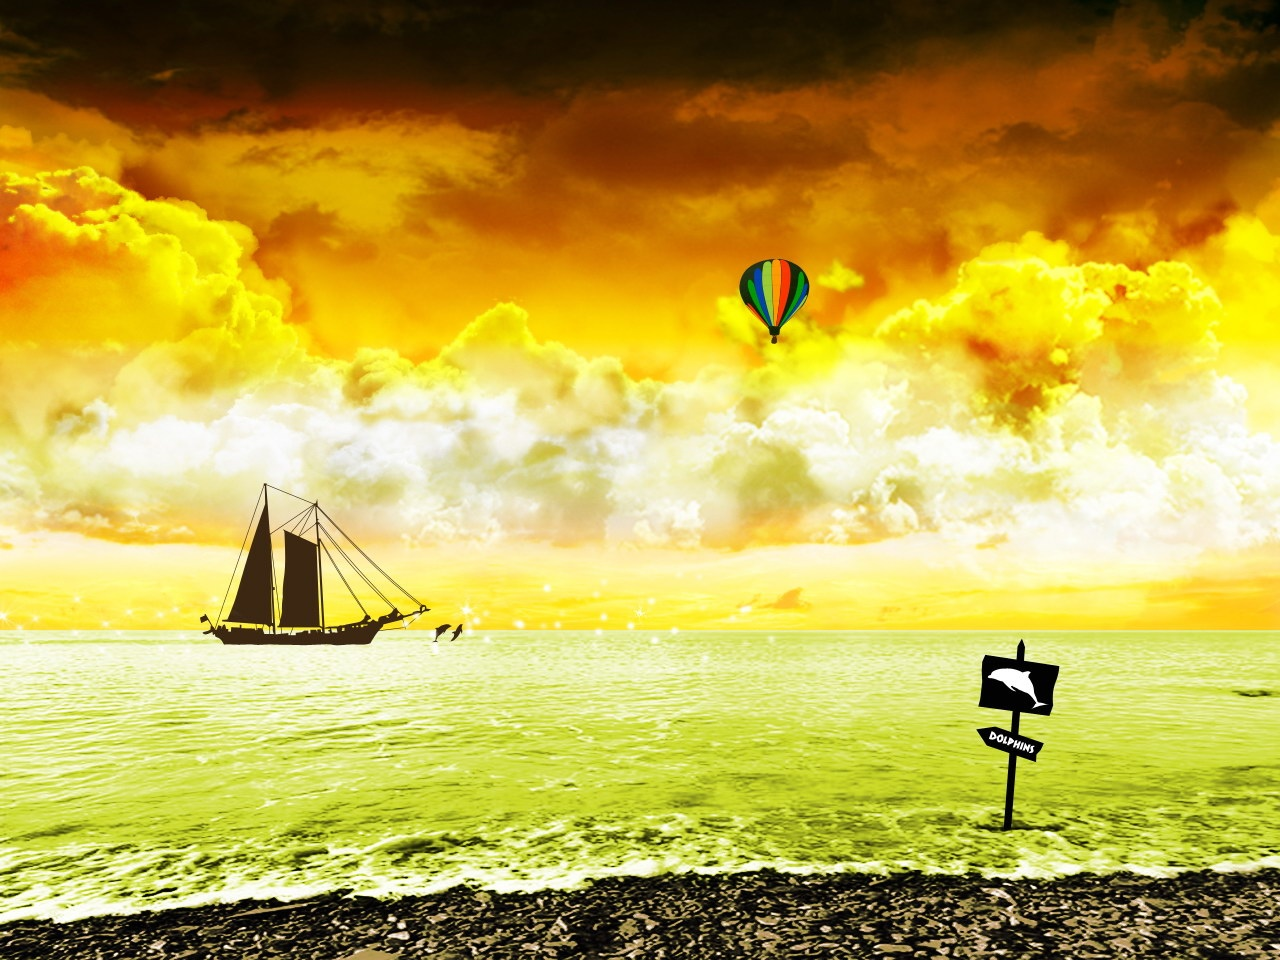 3d Animated Wallpapers For Windows 7 Strictly Wallpaper Imaginary Worlds Wallpapers 4